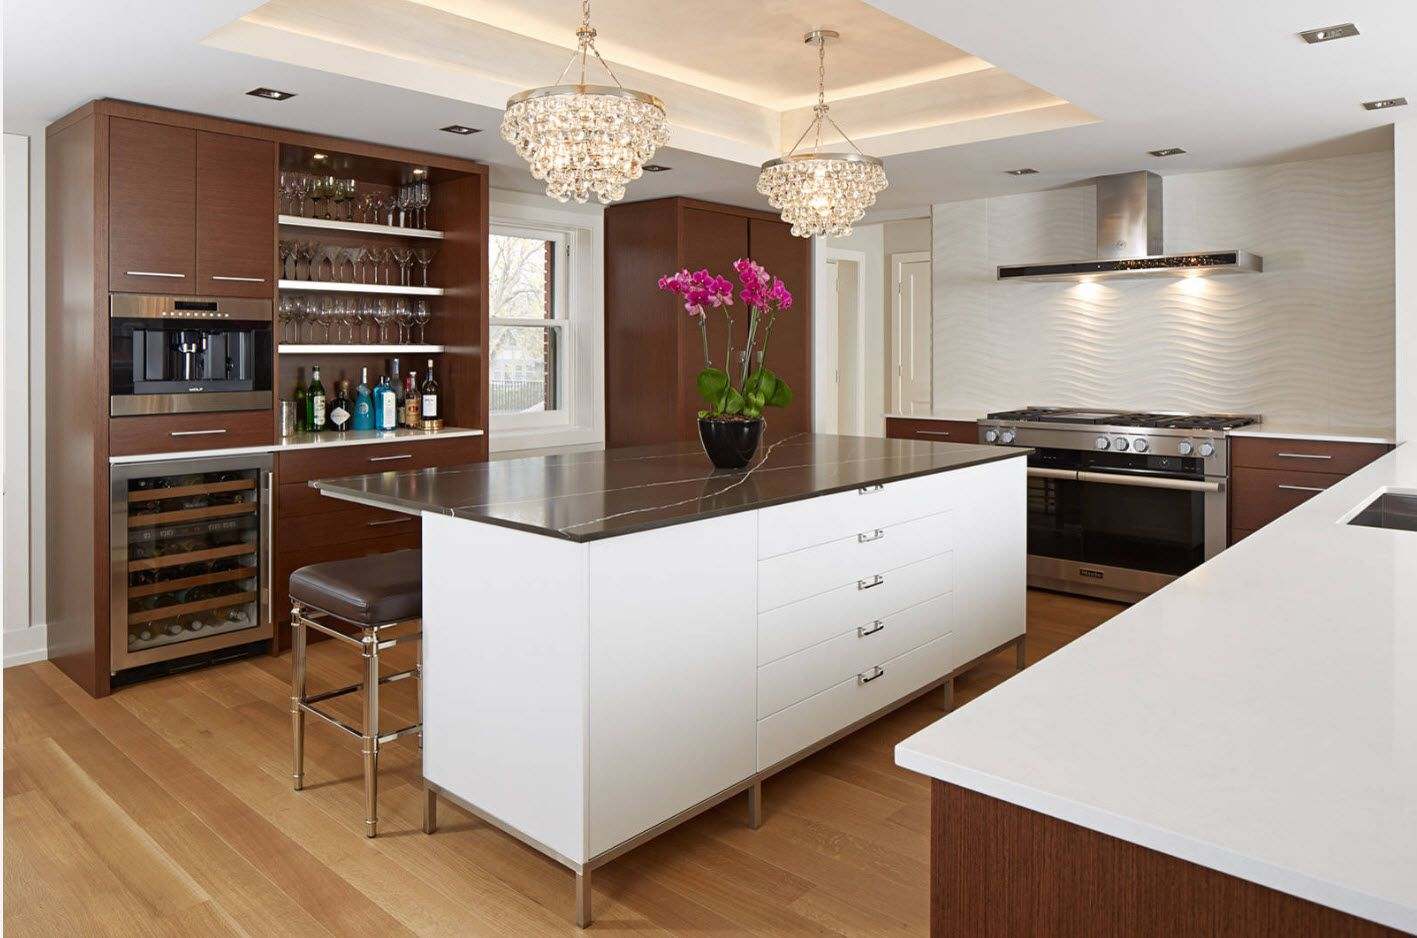 100+ Photo Design Ideas of Modern, Comfortable IKEA Kitchens. Contrasting design of island